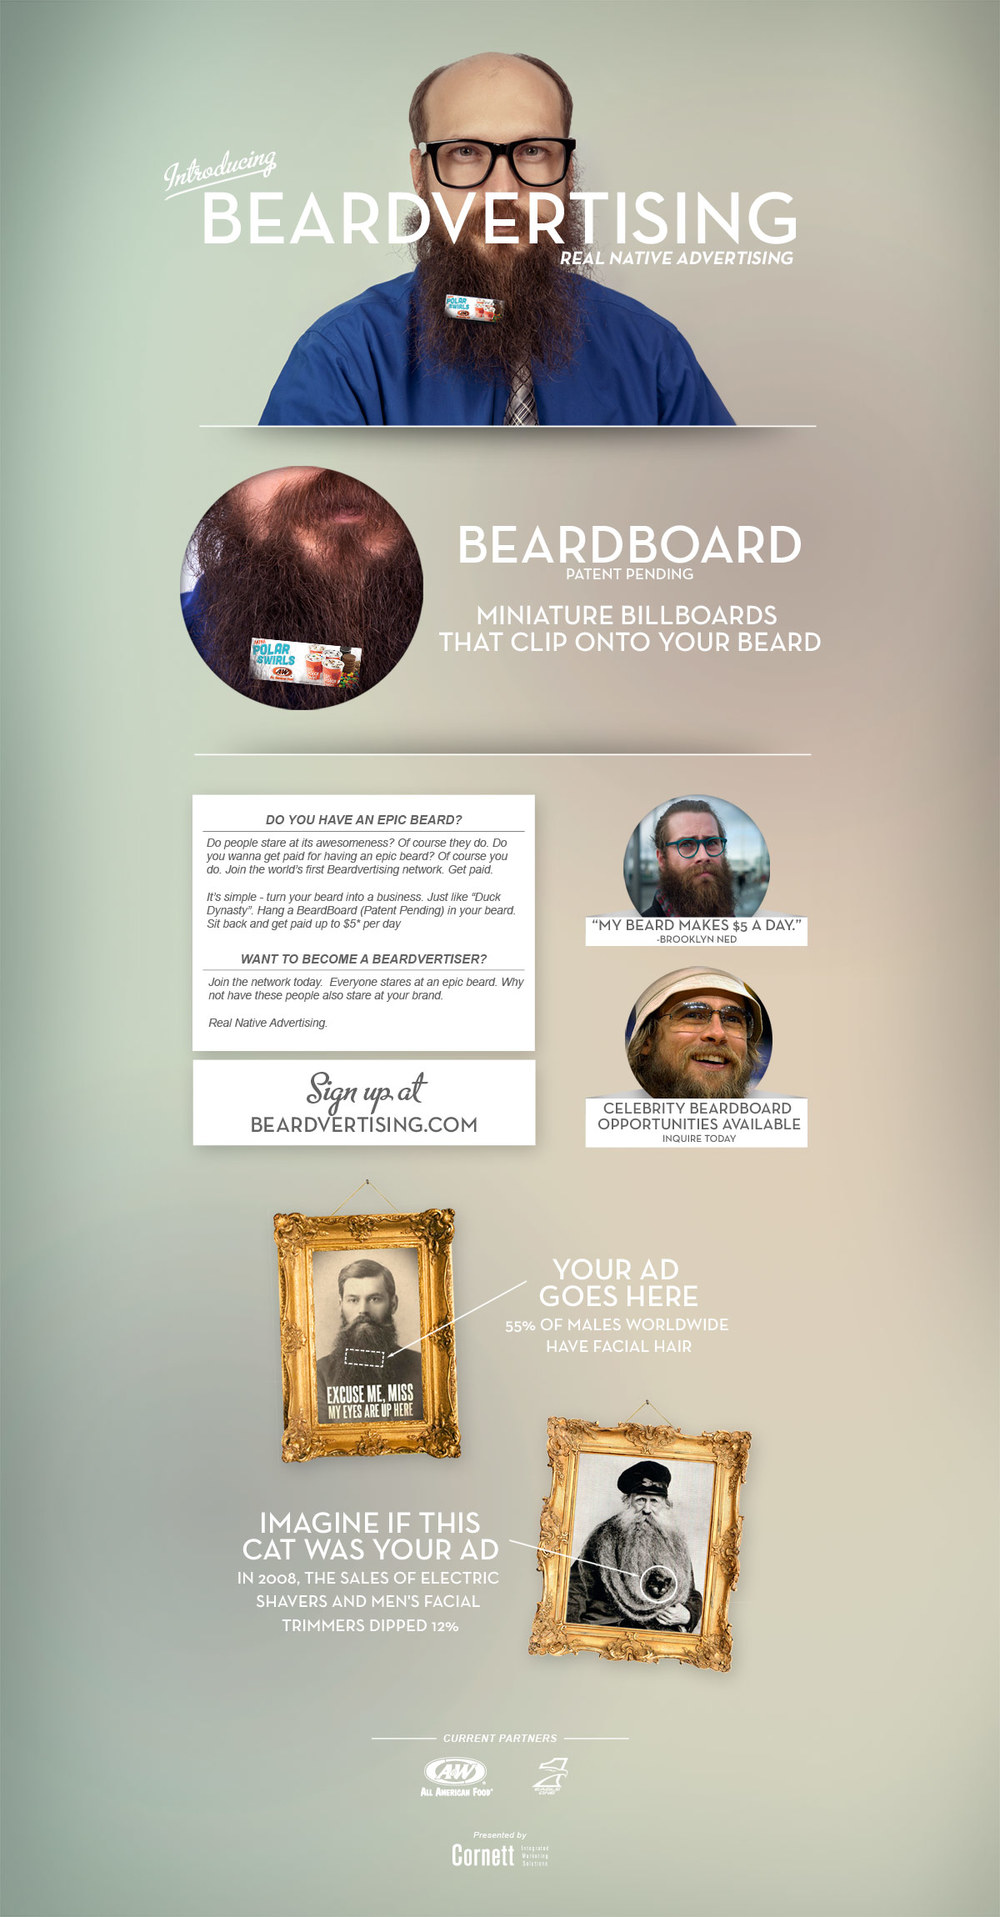 beardvertising-1-sheet.jpg